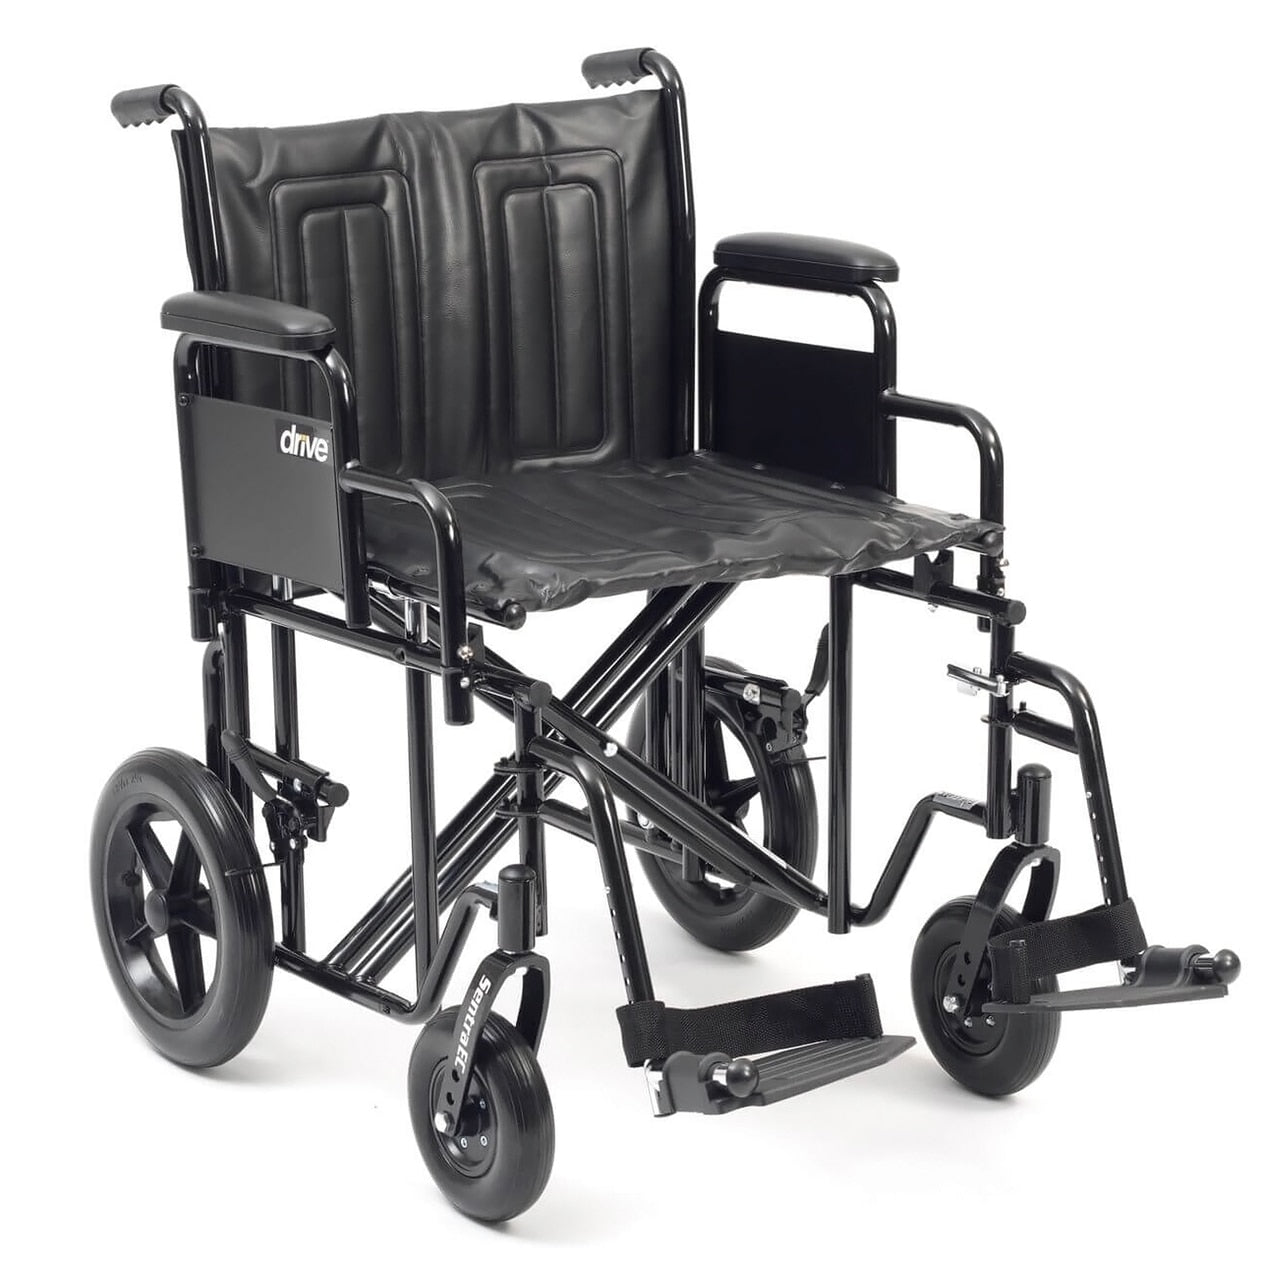 Sentra HD Heavy Duty Transit Wheelchair